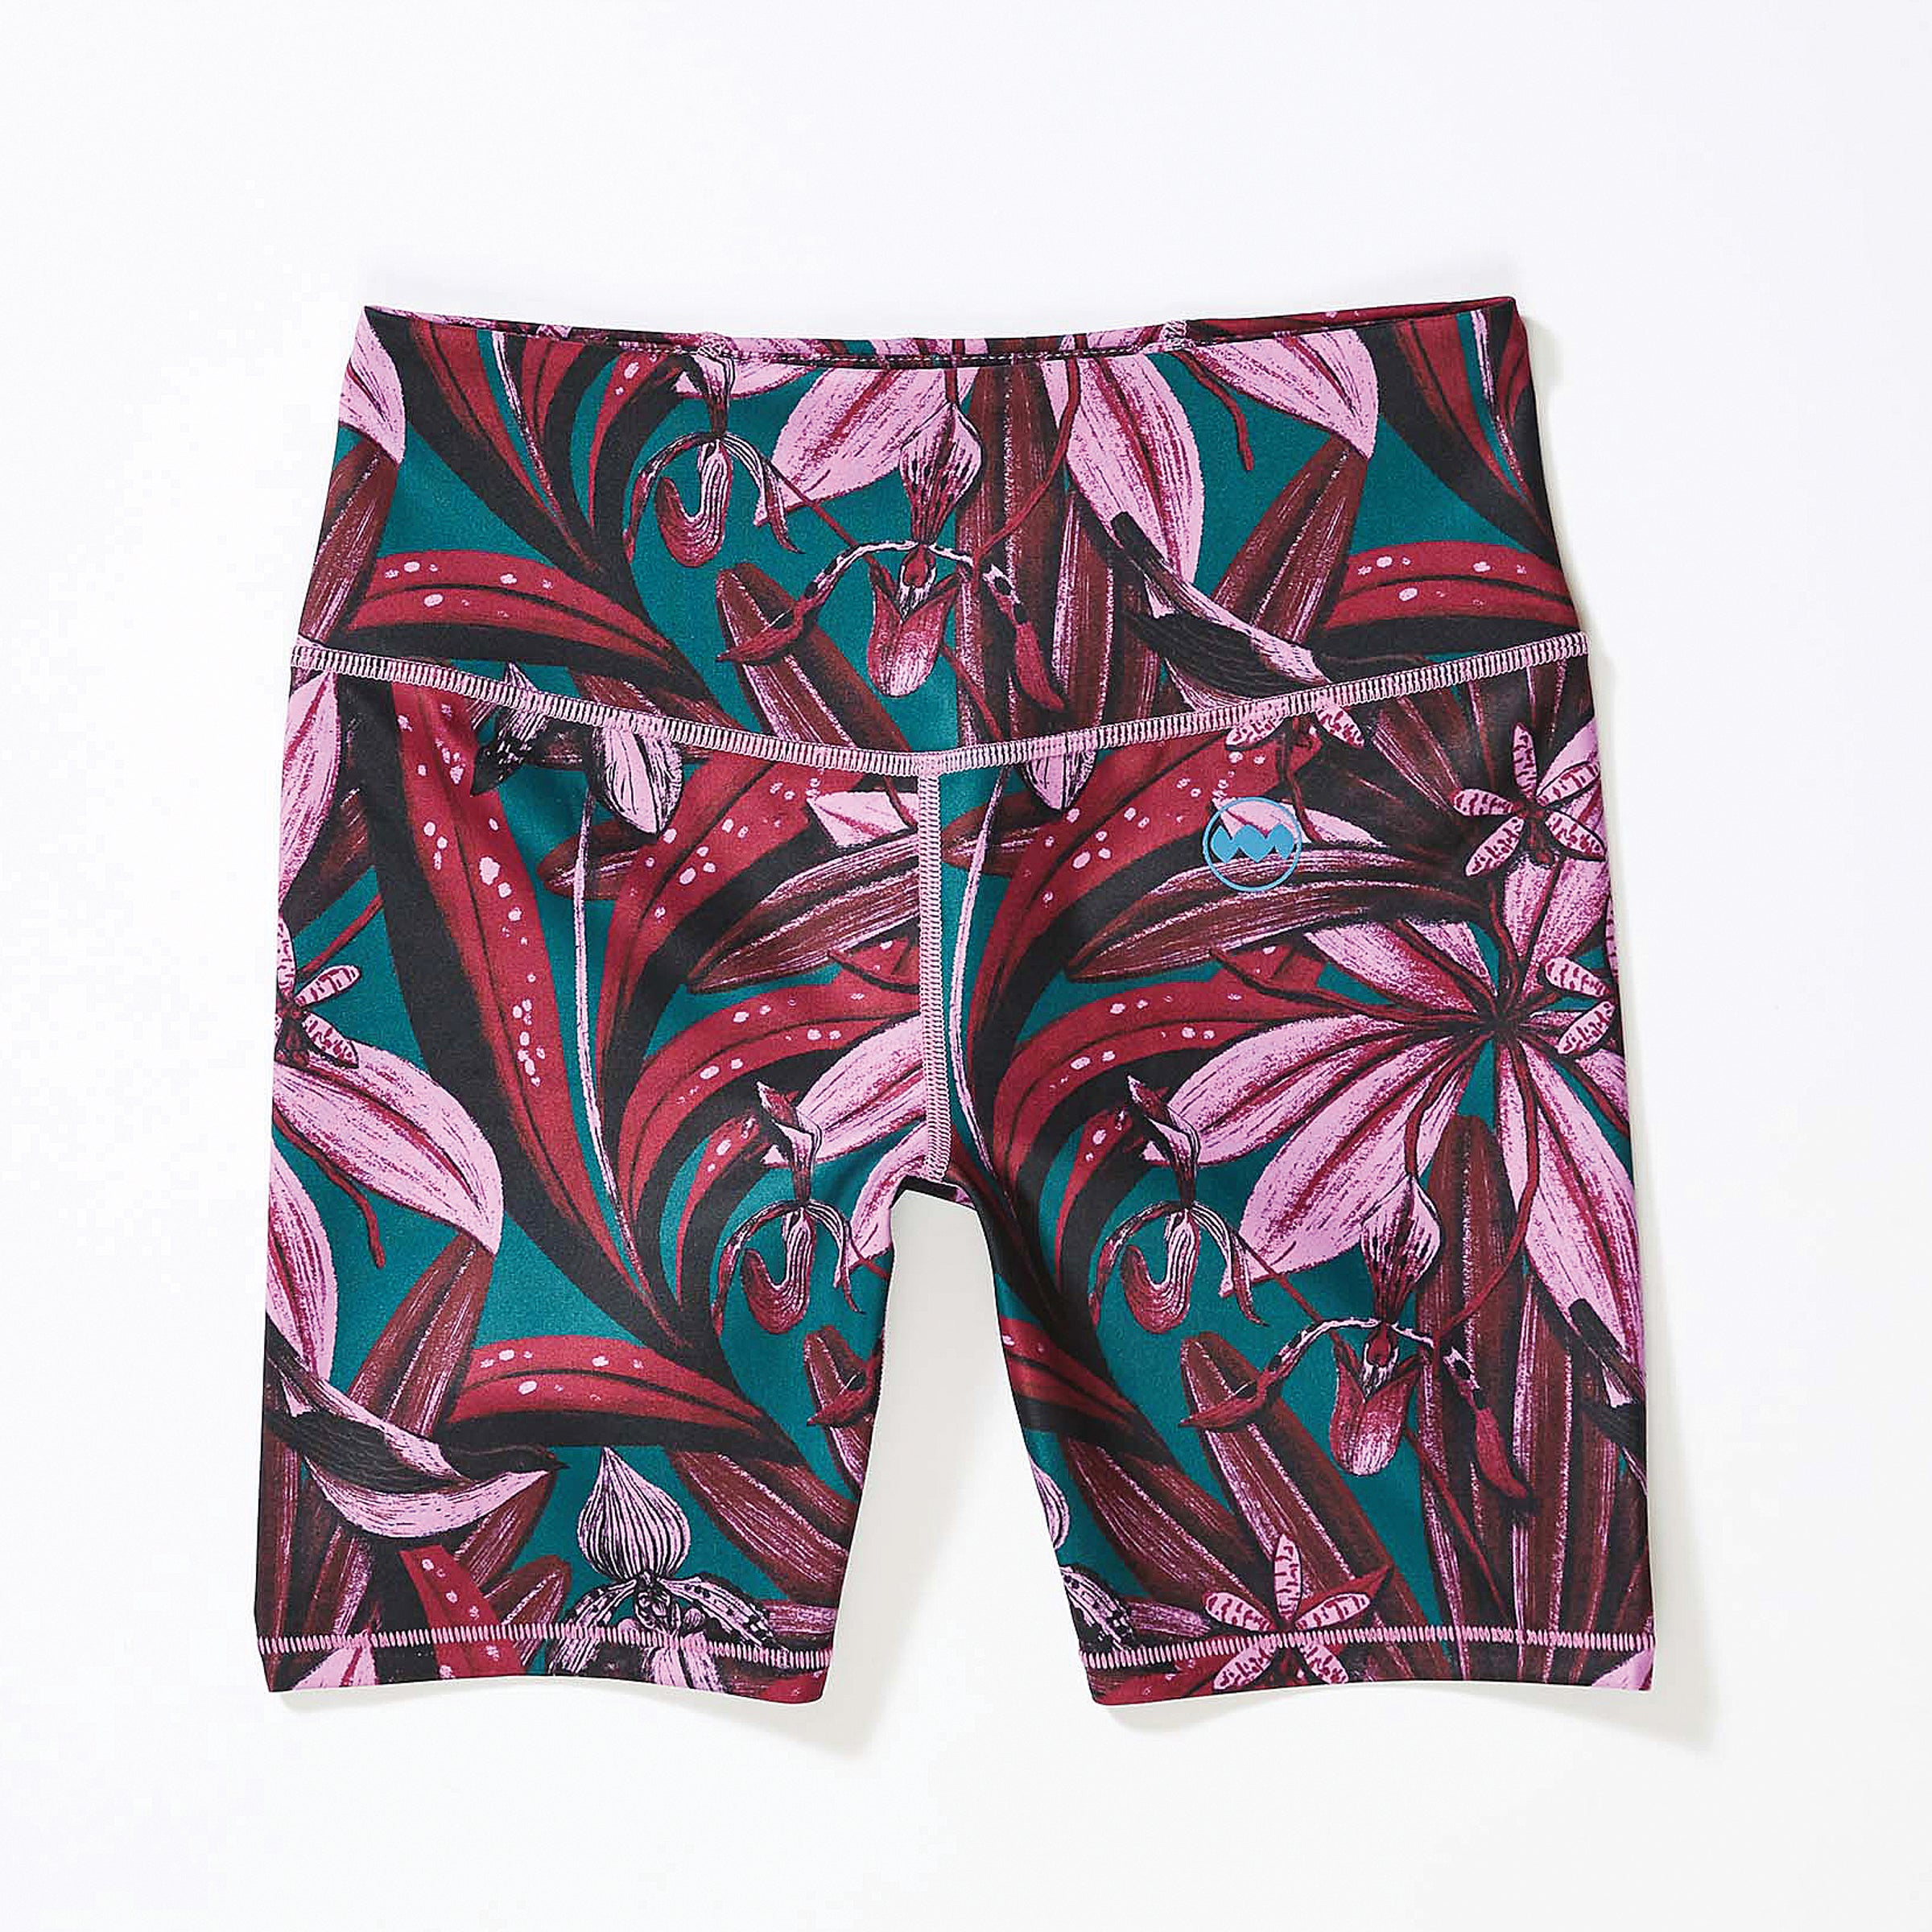 Janji Race Short